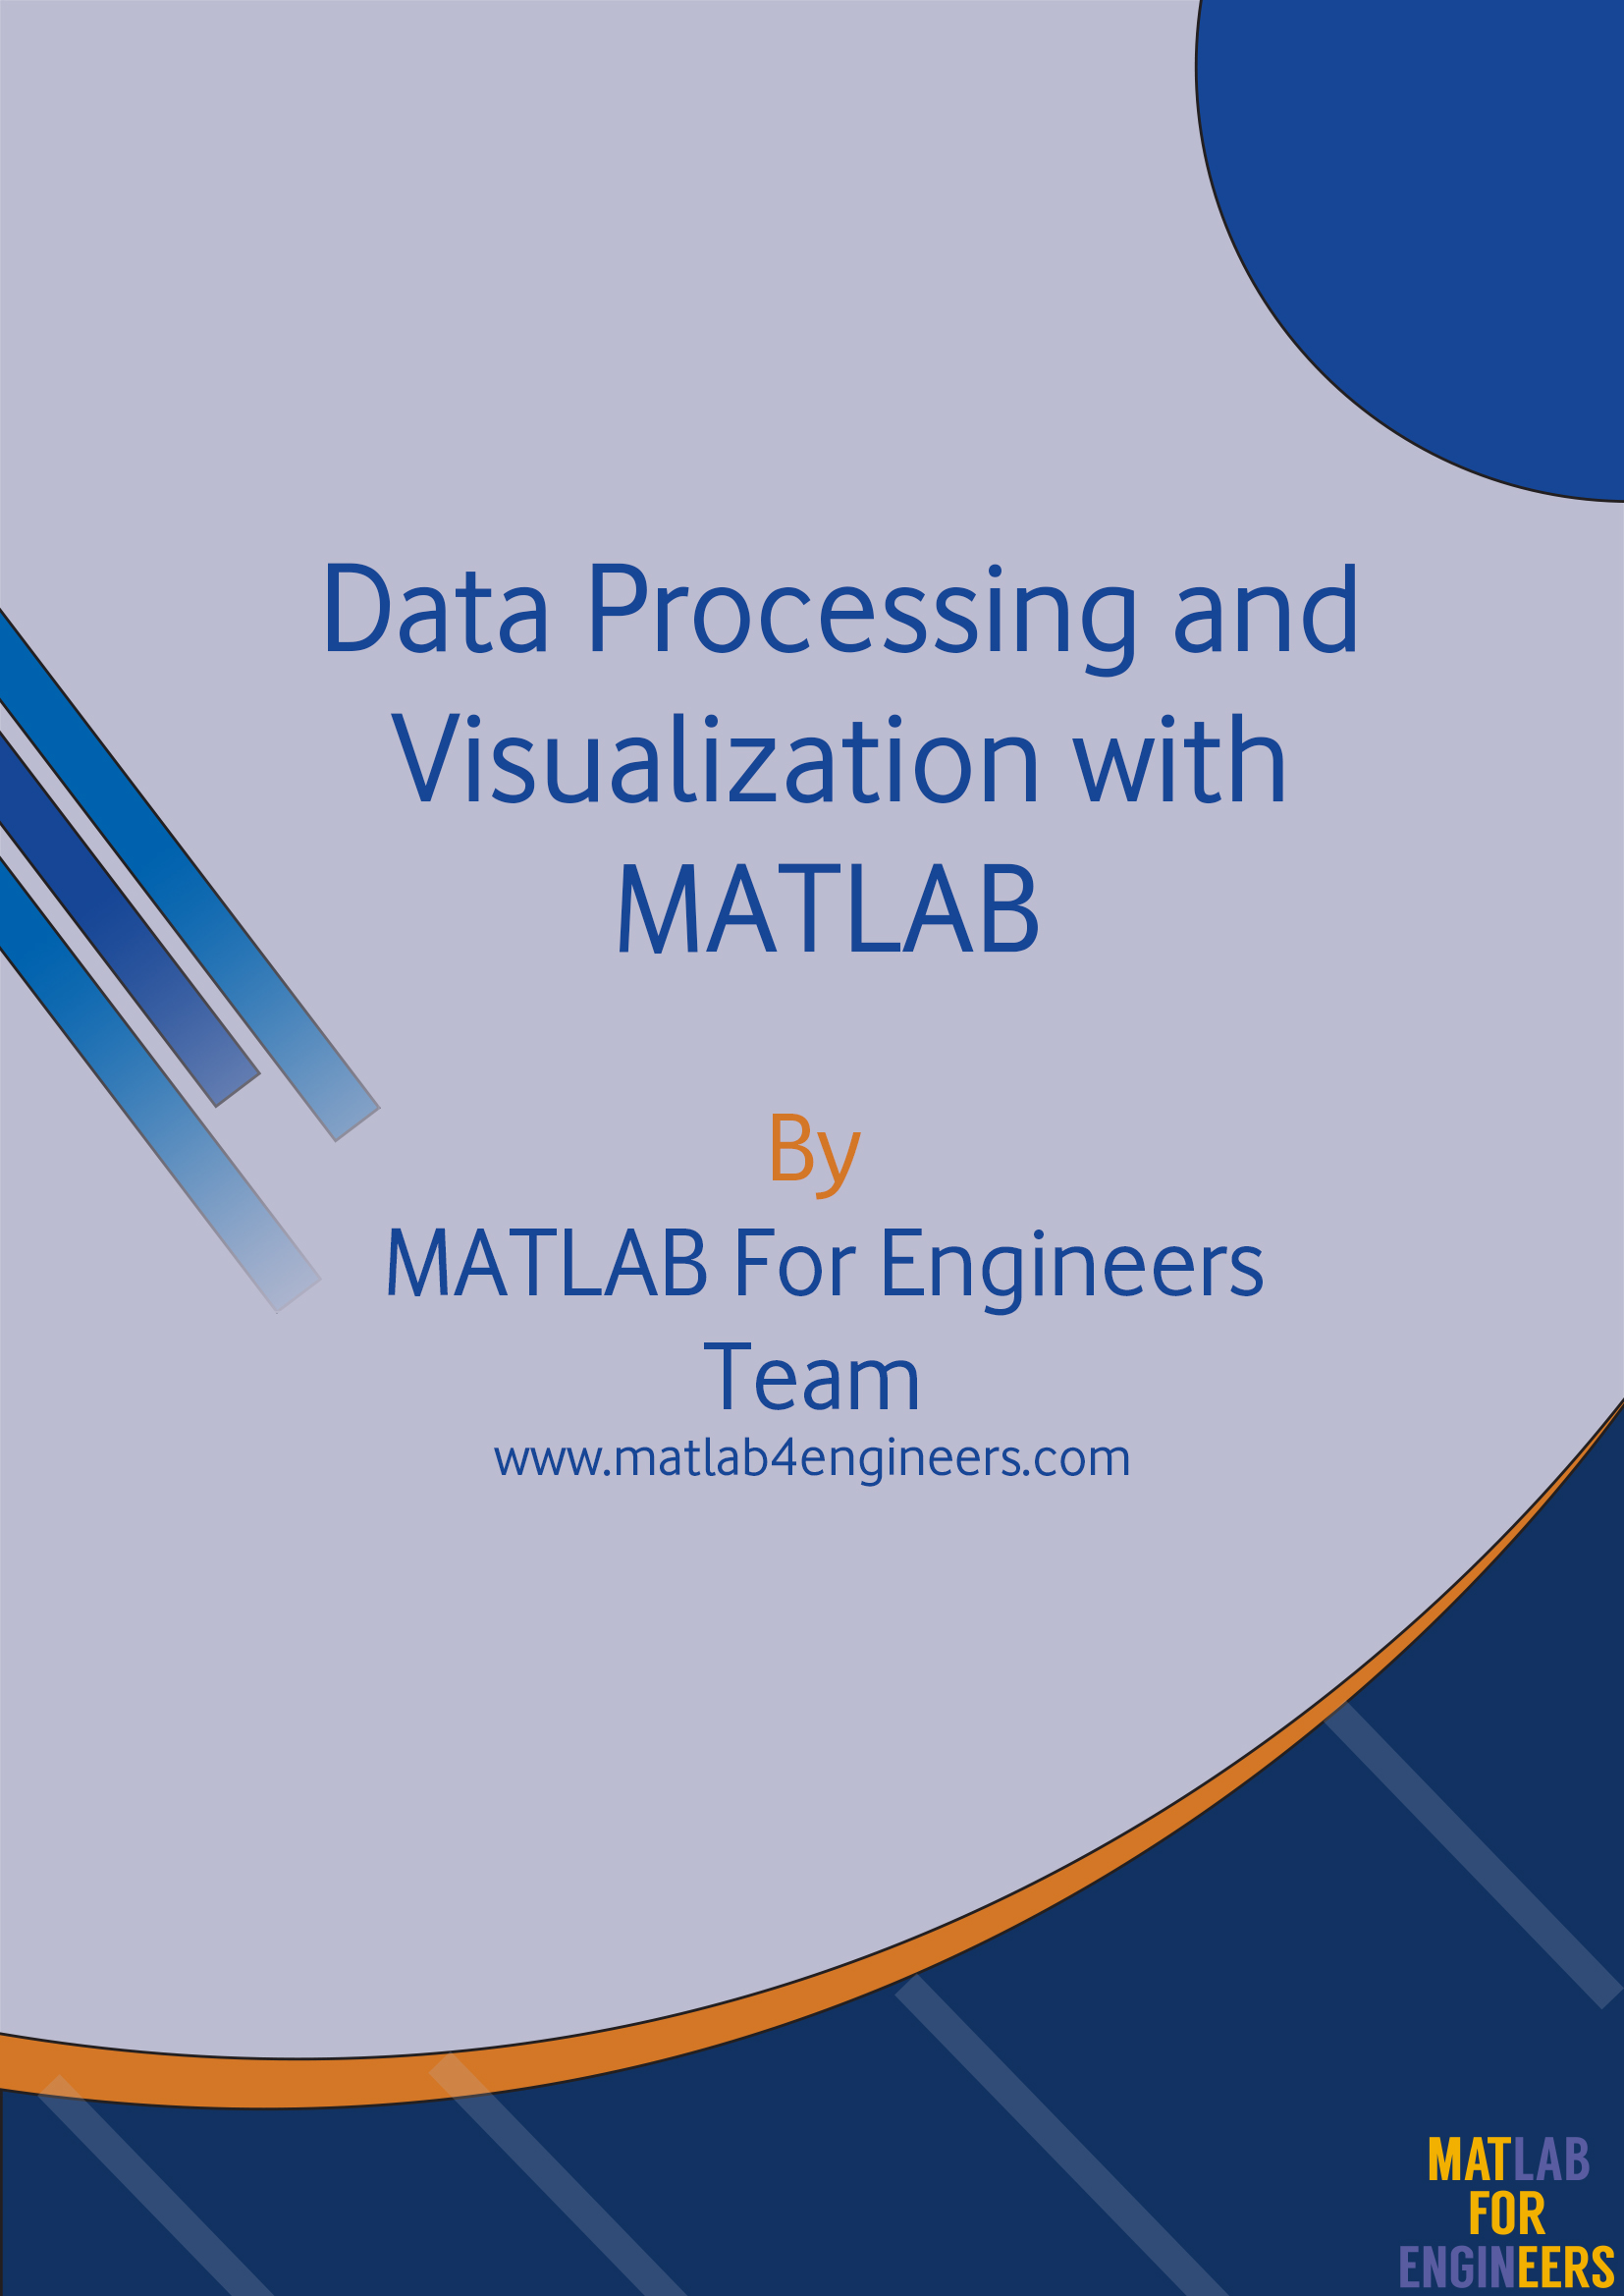 MATLAB for Data Processing and Visualization Book